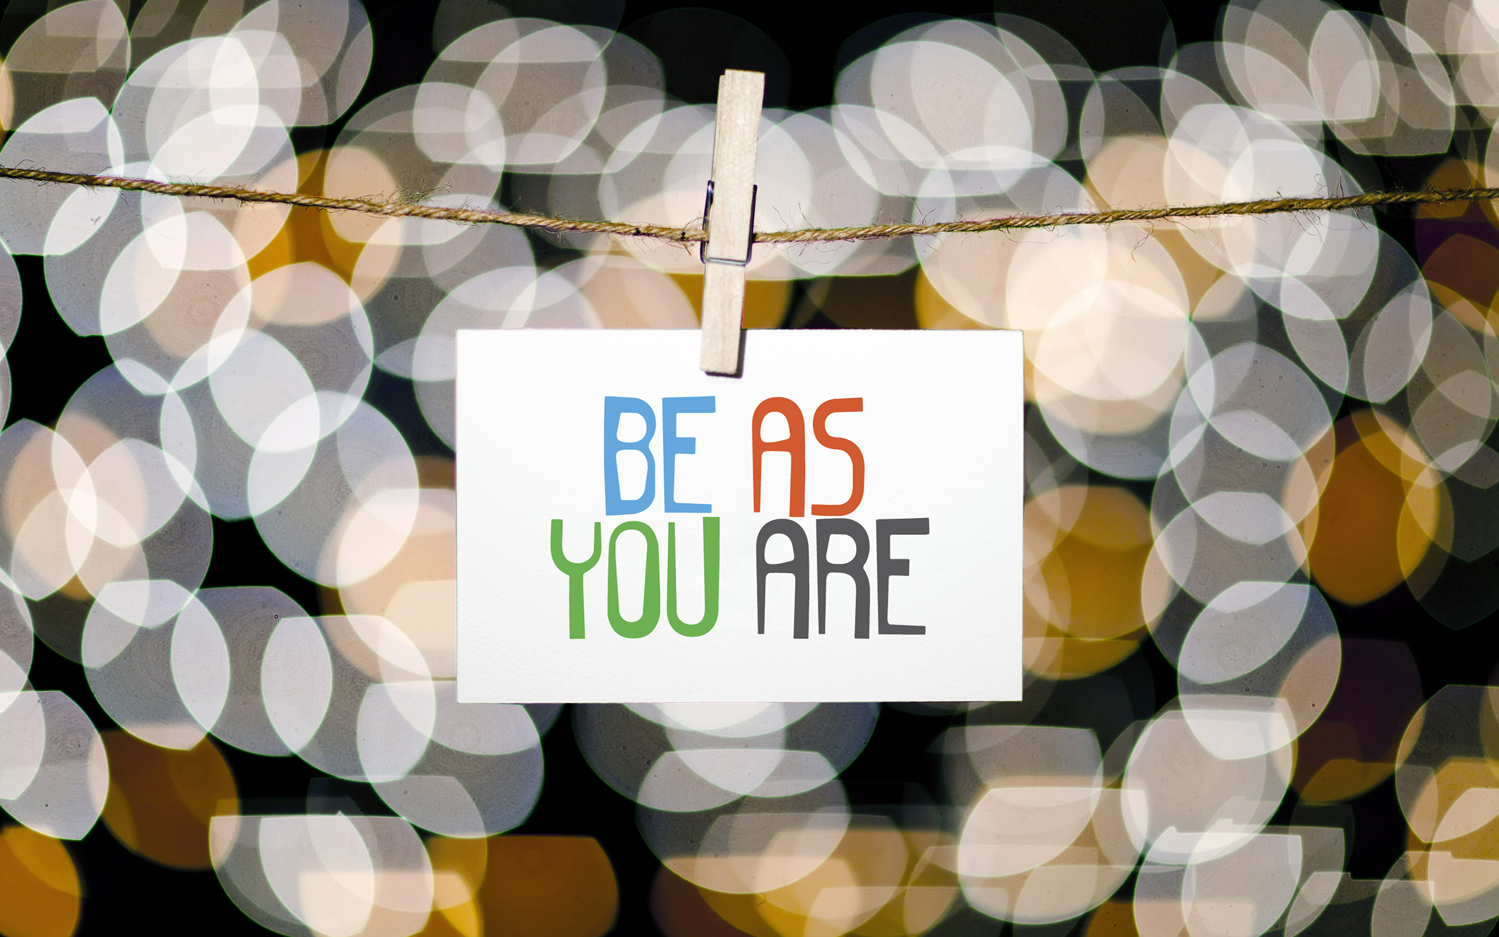 bE_aS_yOU_aRE_LiGHTS_bG-eTSY